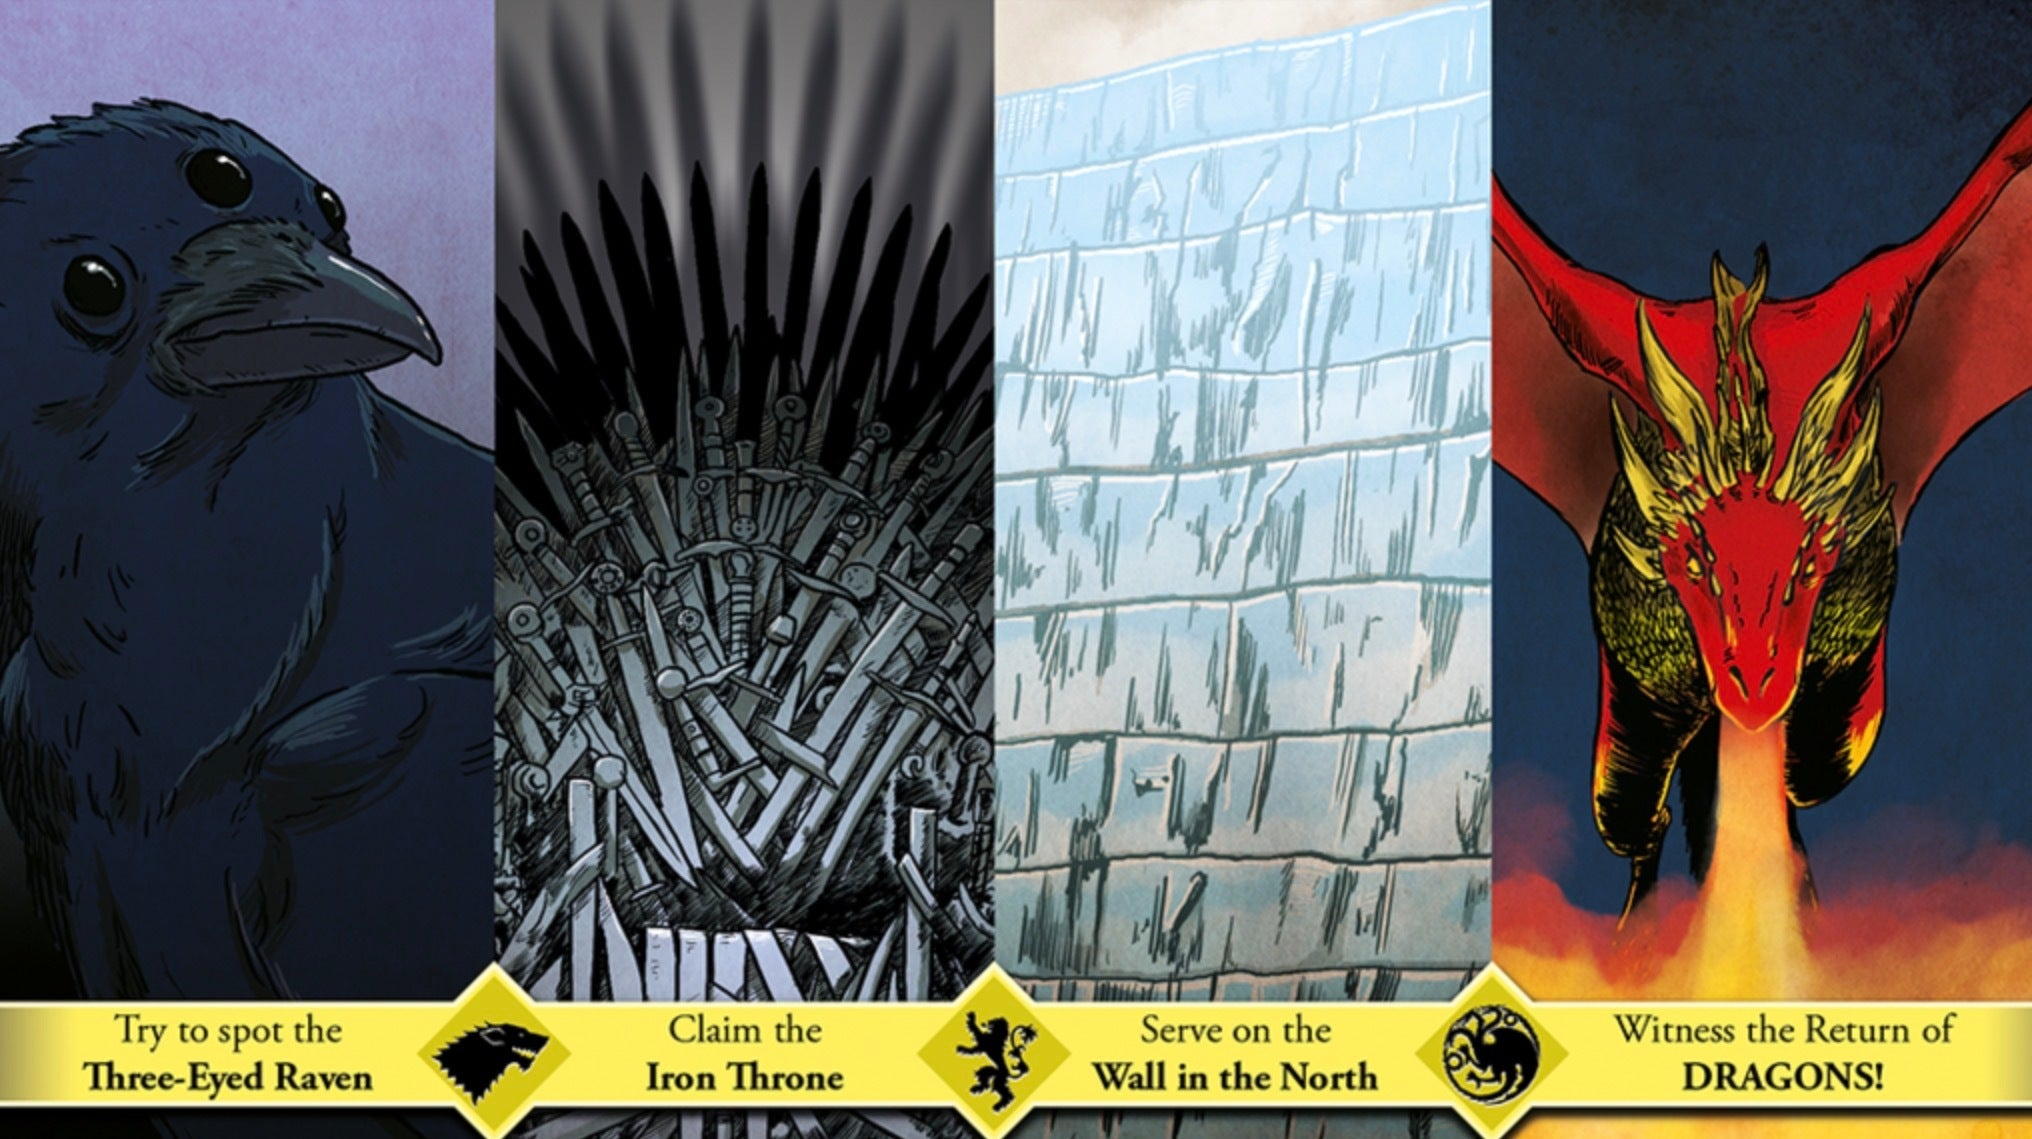 Here's Some Gorgeous Game Of Thrones Art To Enjoy During The Long Winter